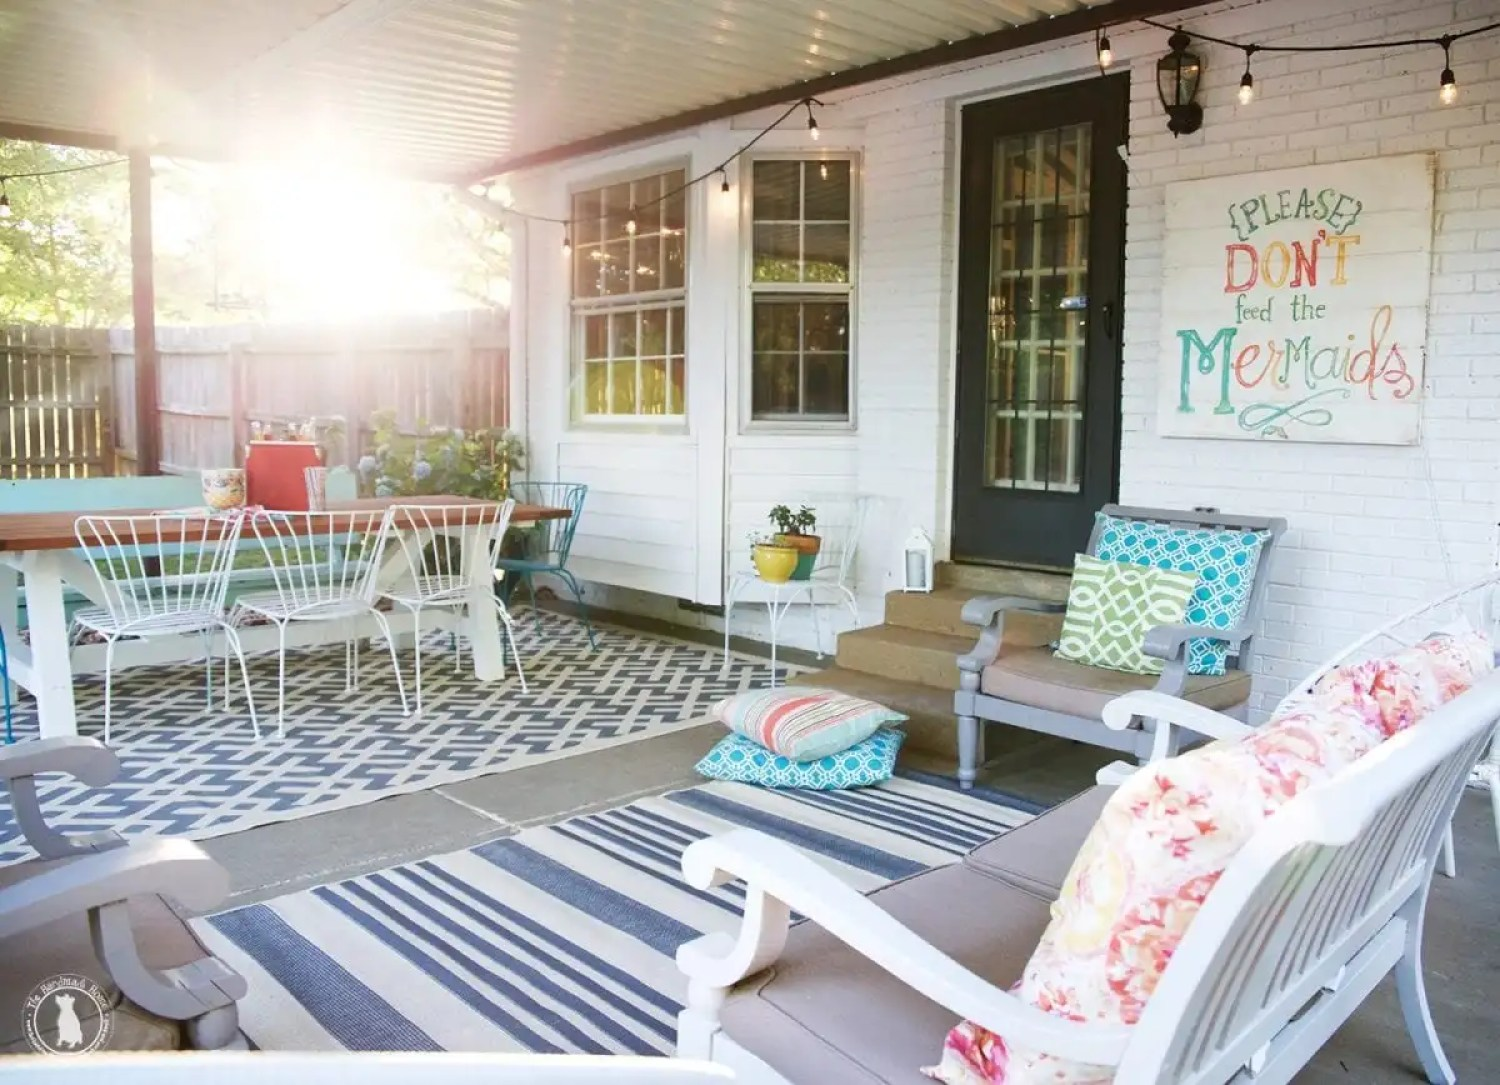 tips for creating an outdoor space - signs